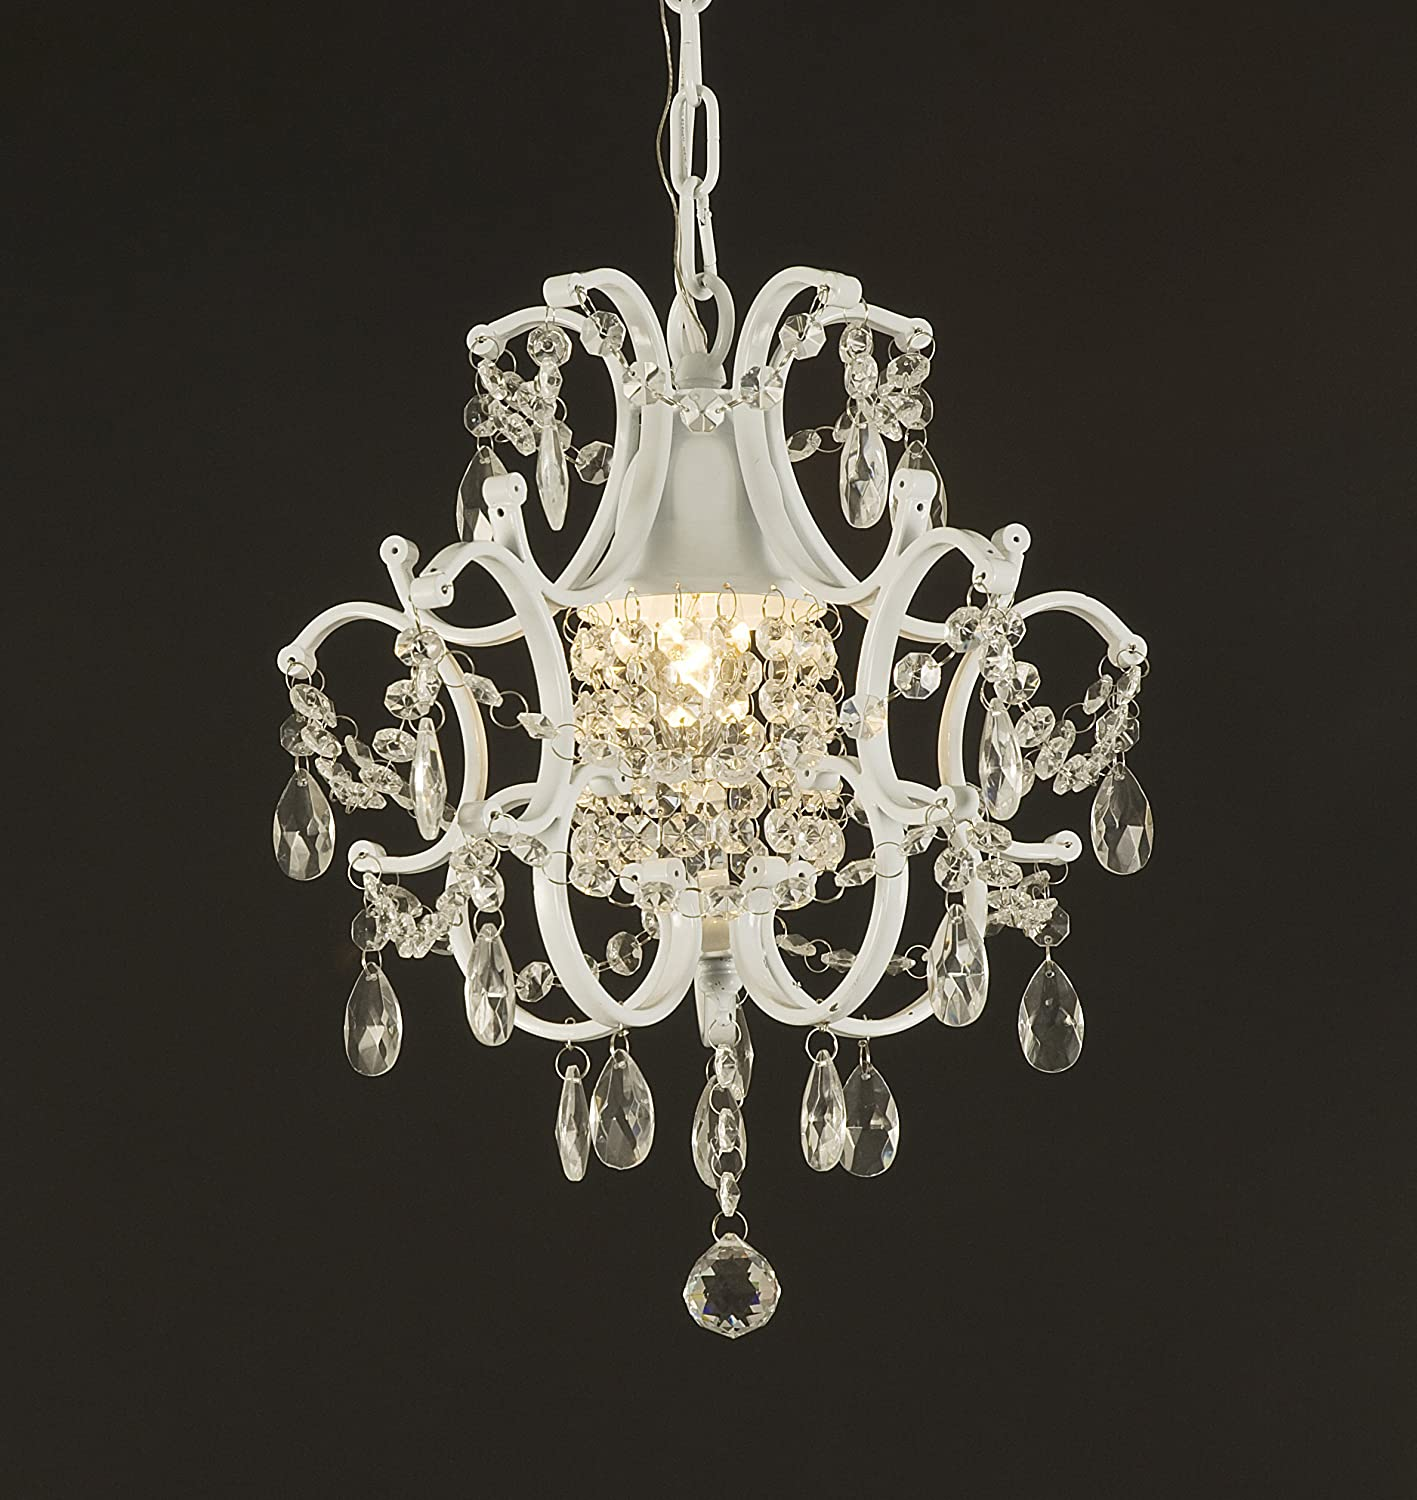 Country french light fixtures best home decoration world class - Ceiling lights and chandeliers ...